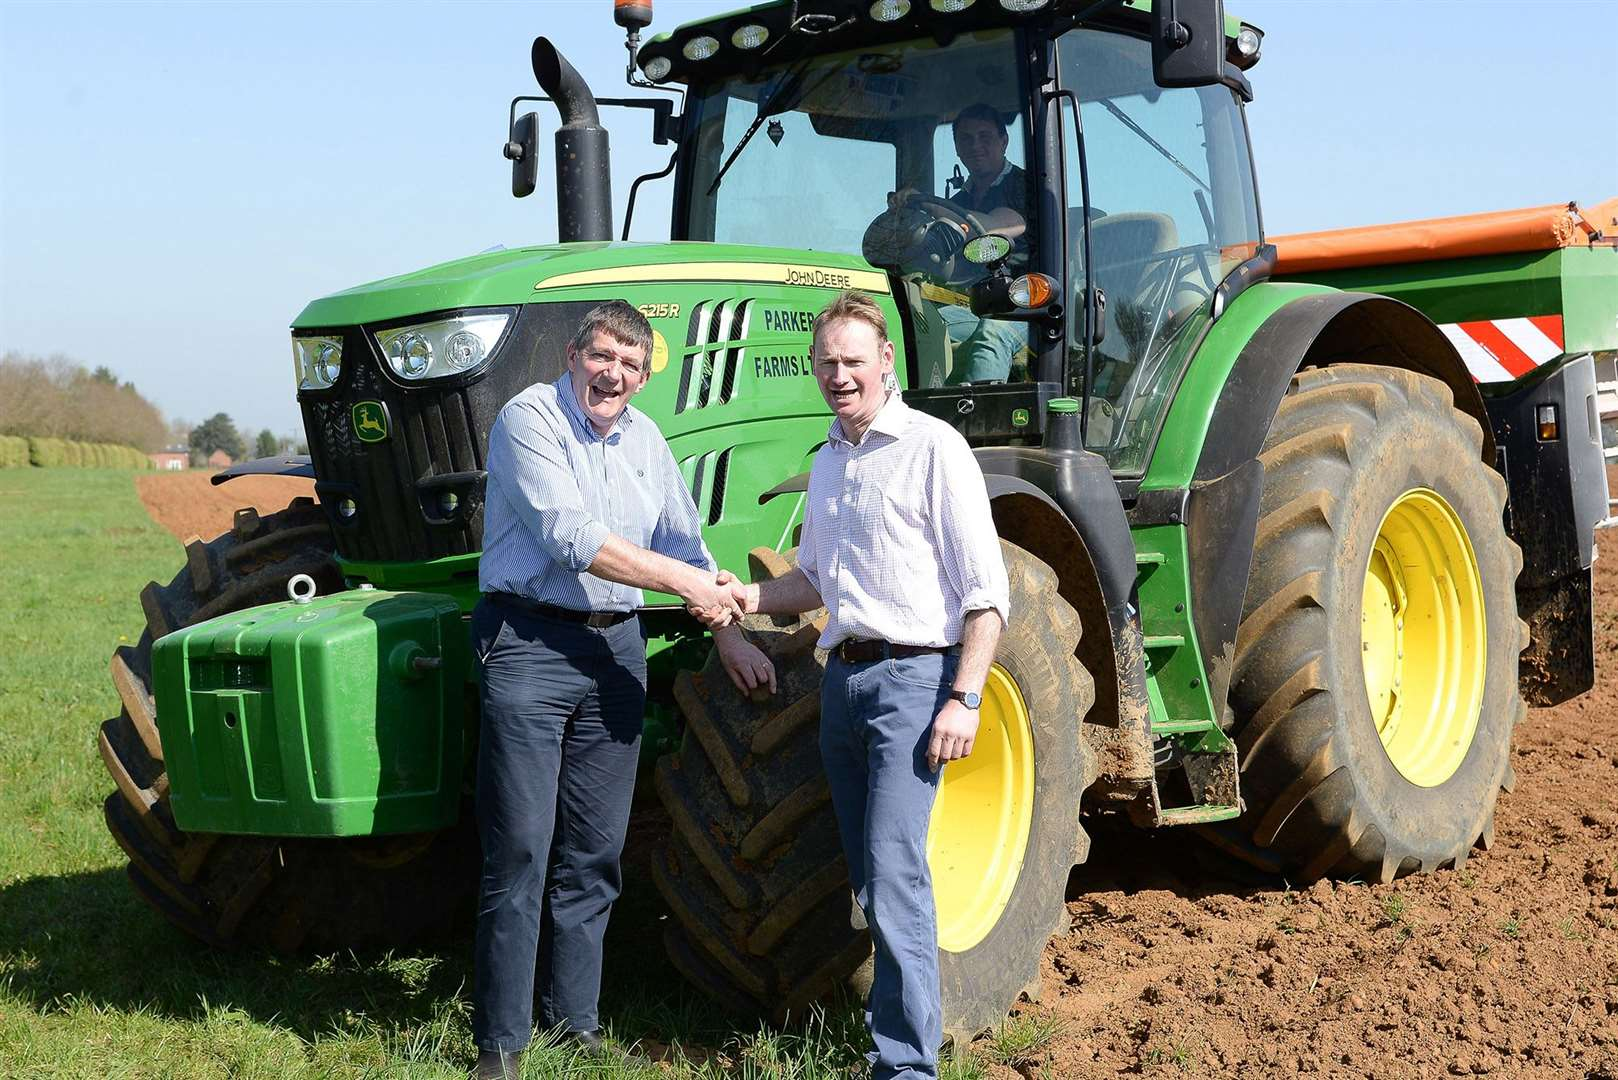 Simon Thompson of Parker Farms meets council leader Oliver Hemsley